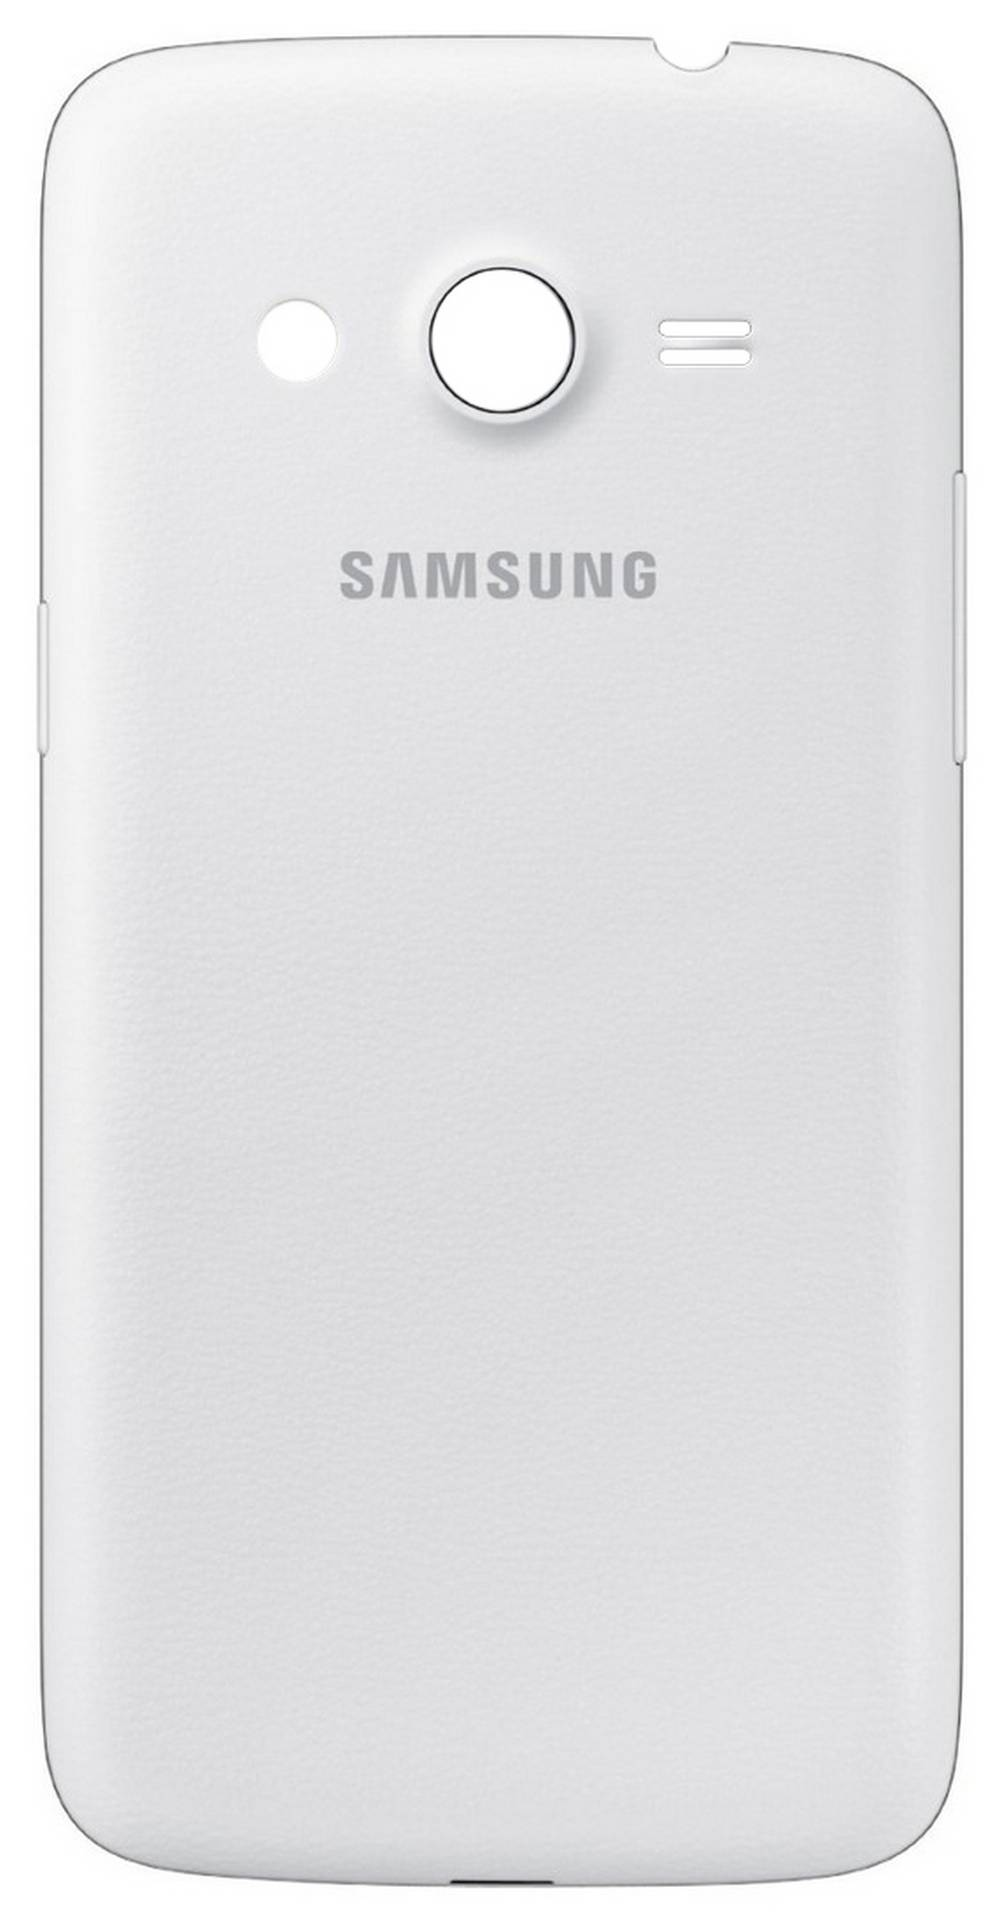 Καπάκι Μπαταρίας Samsung SM-G386F Galaxy Core Plus LTE Λευκό Original GH98-30927A